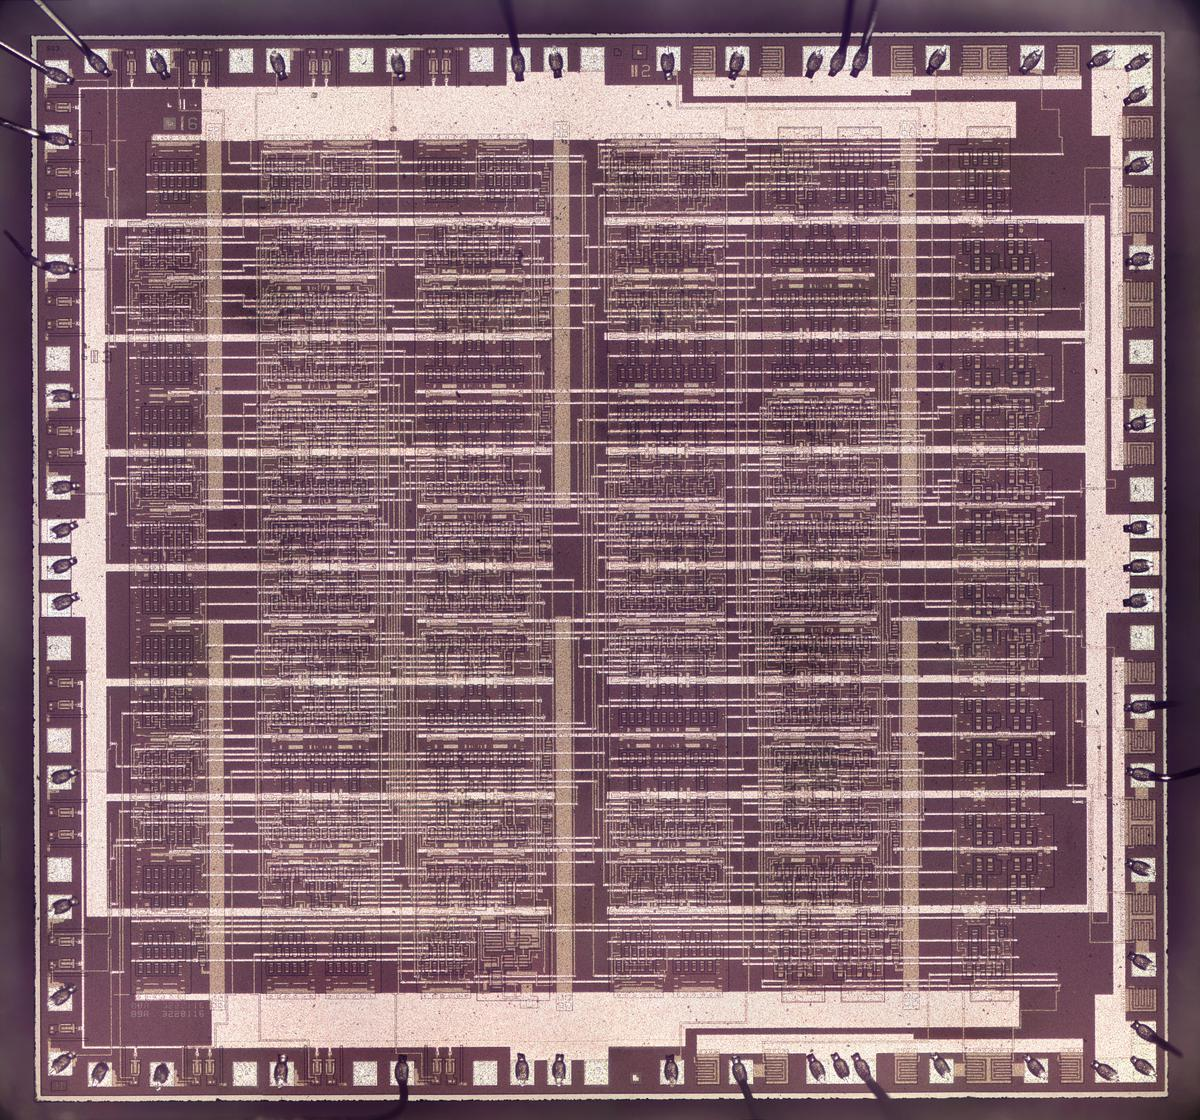 Die photo of the fake 8086, showing the metal layer on top. The thick horizontal and vertical strips provide power and ground, while the other wiring connects the components.